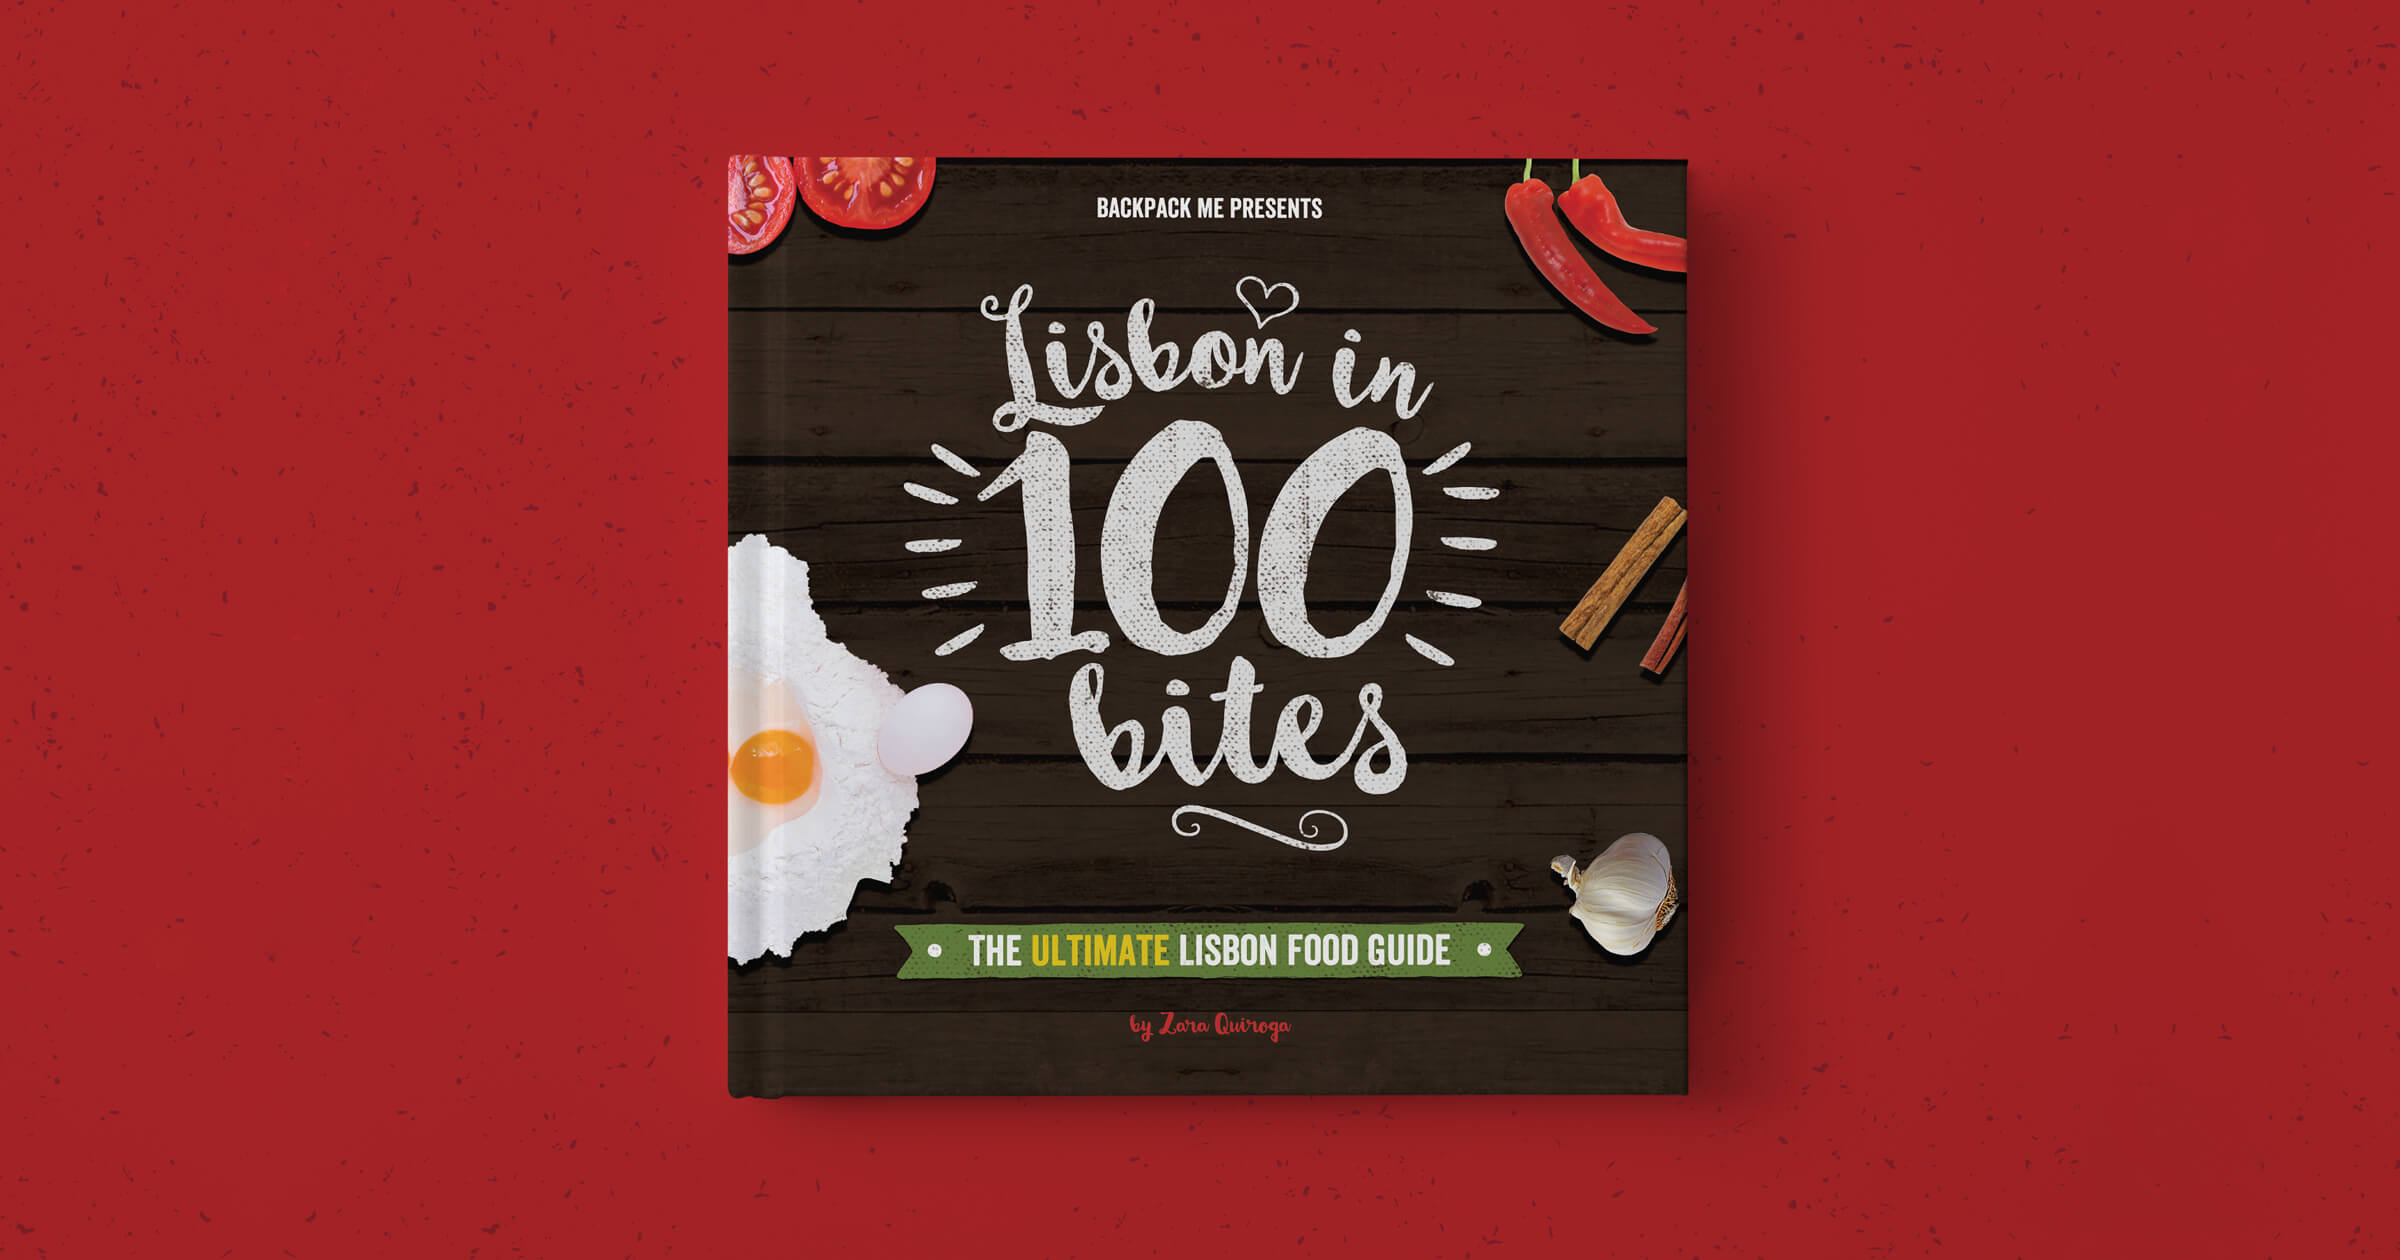 'Lisbon In 100 bites' eBook cover